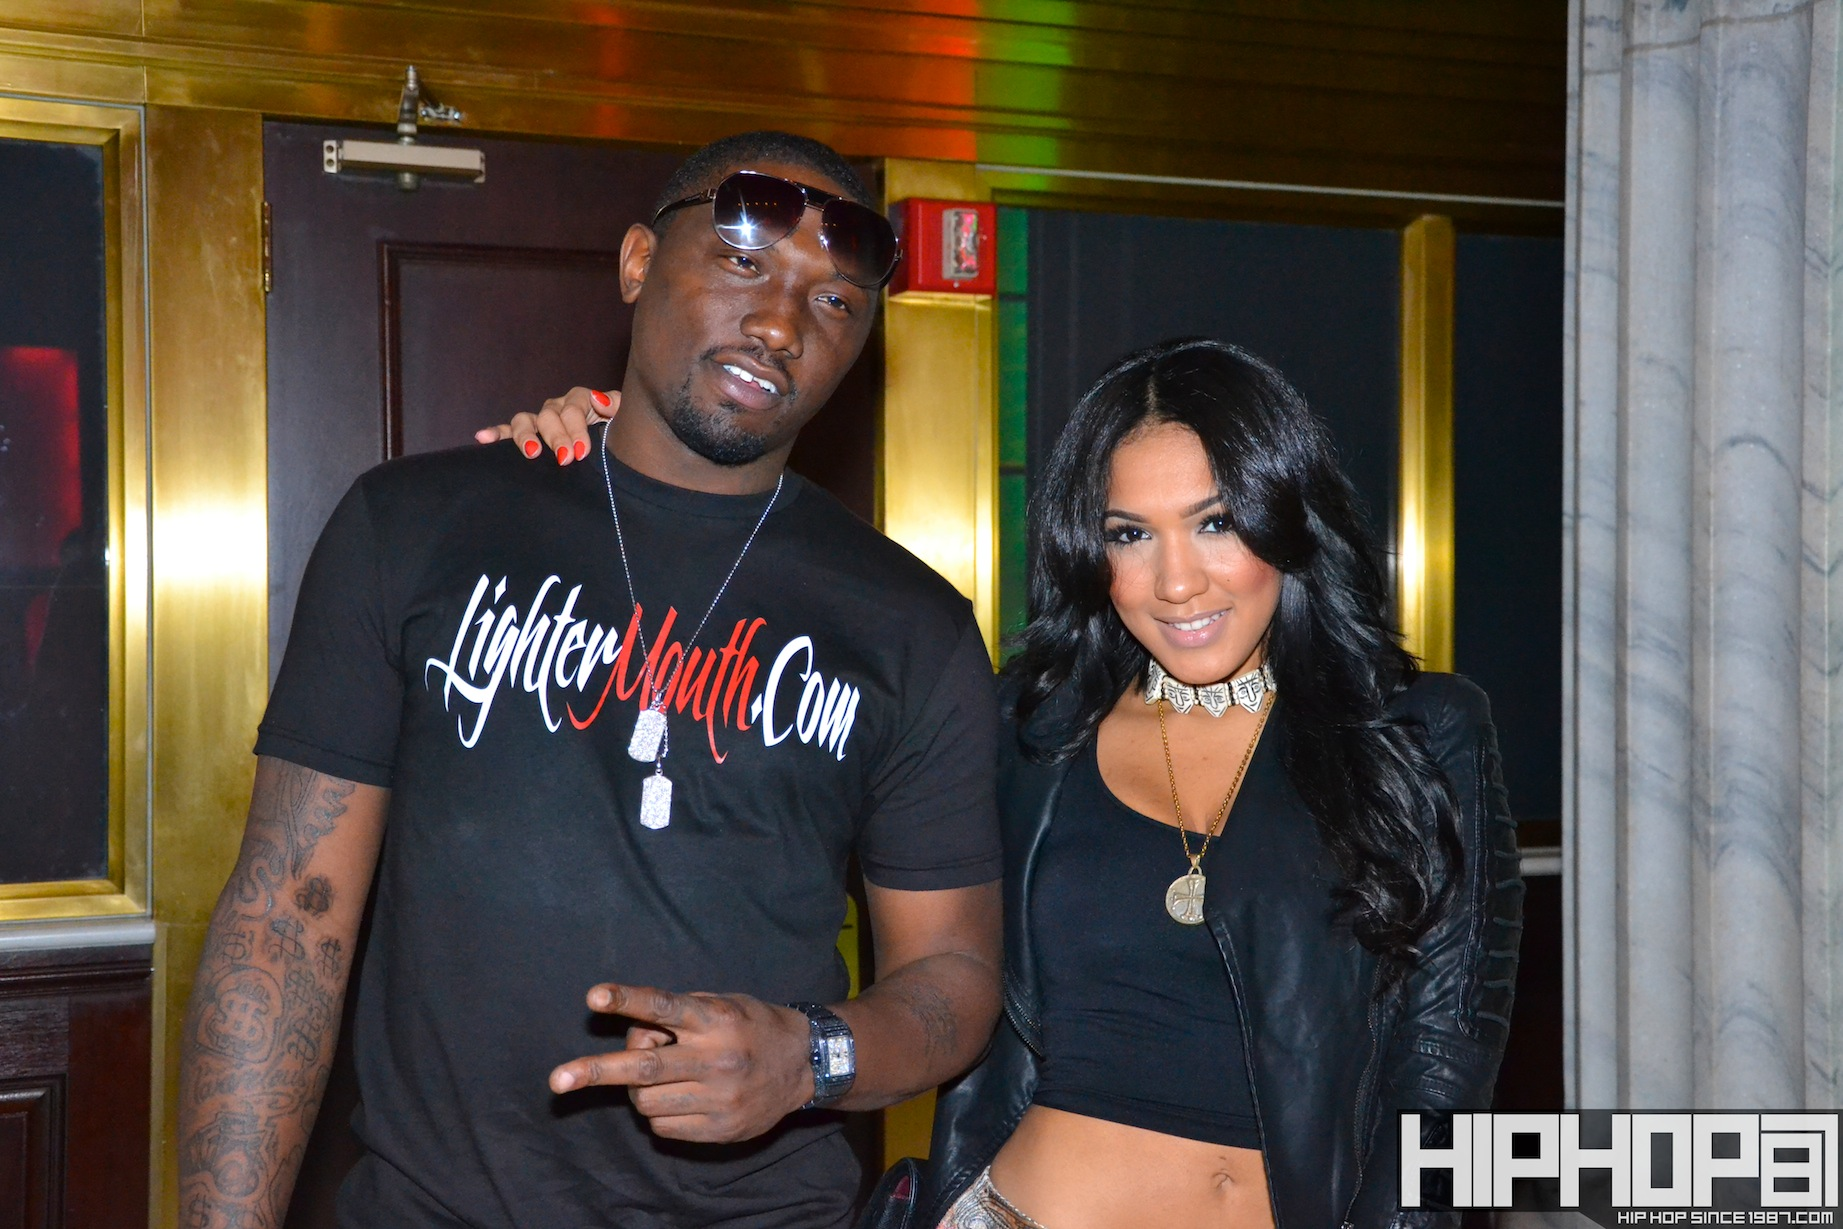 Yaris-Sanchez-3-18-12-8 Yaris Sanchez (@Yaris_Sanchez) Visits Club Onyx In Philly (3/18/12) Photos